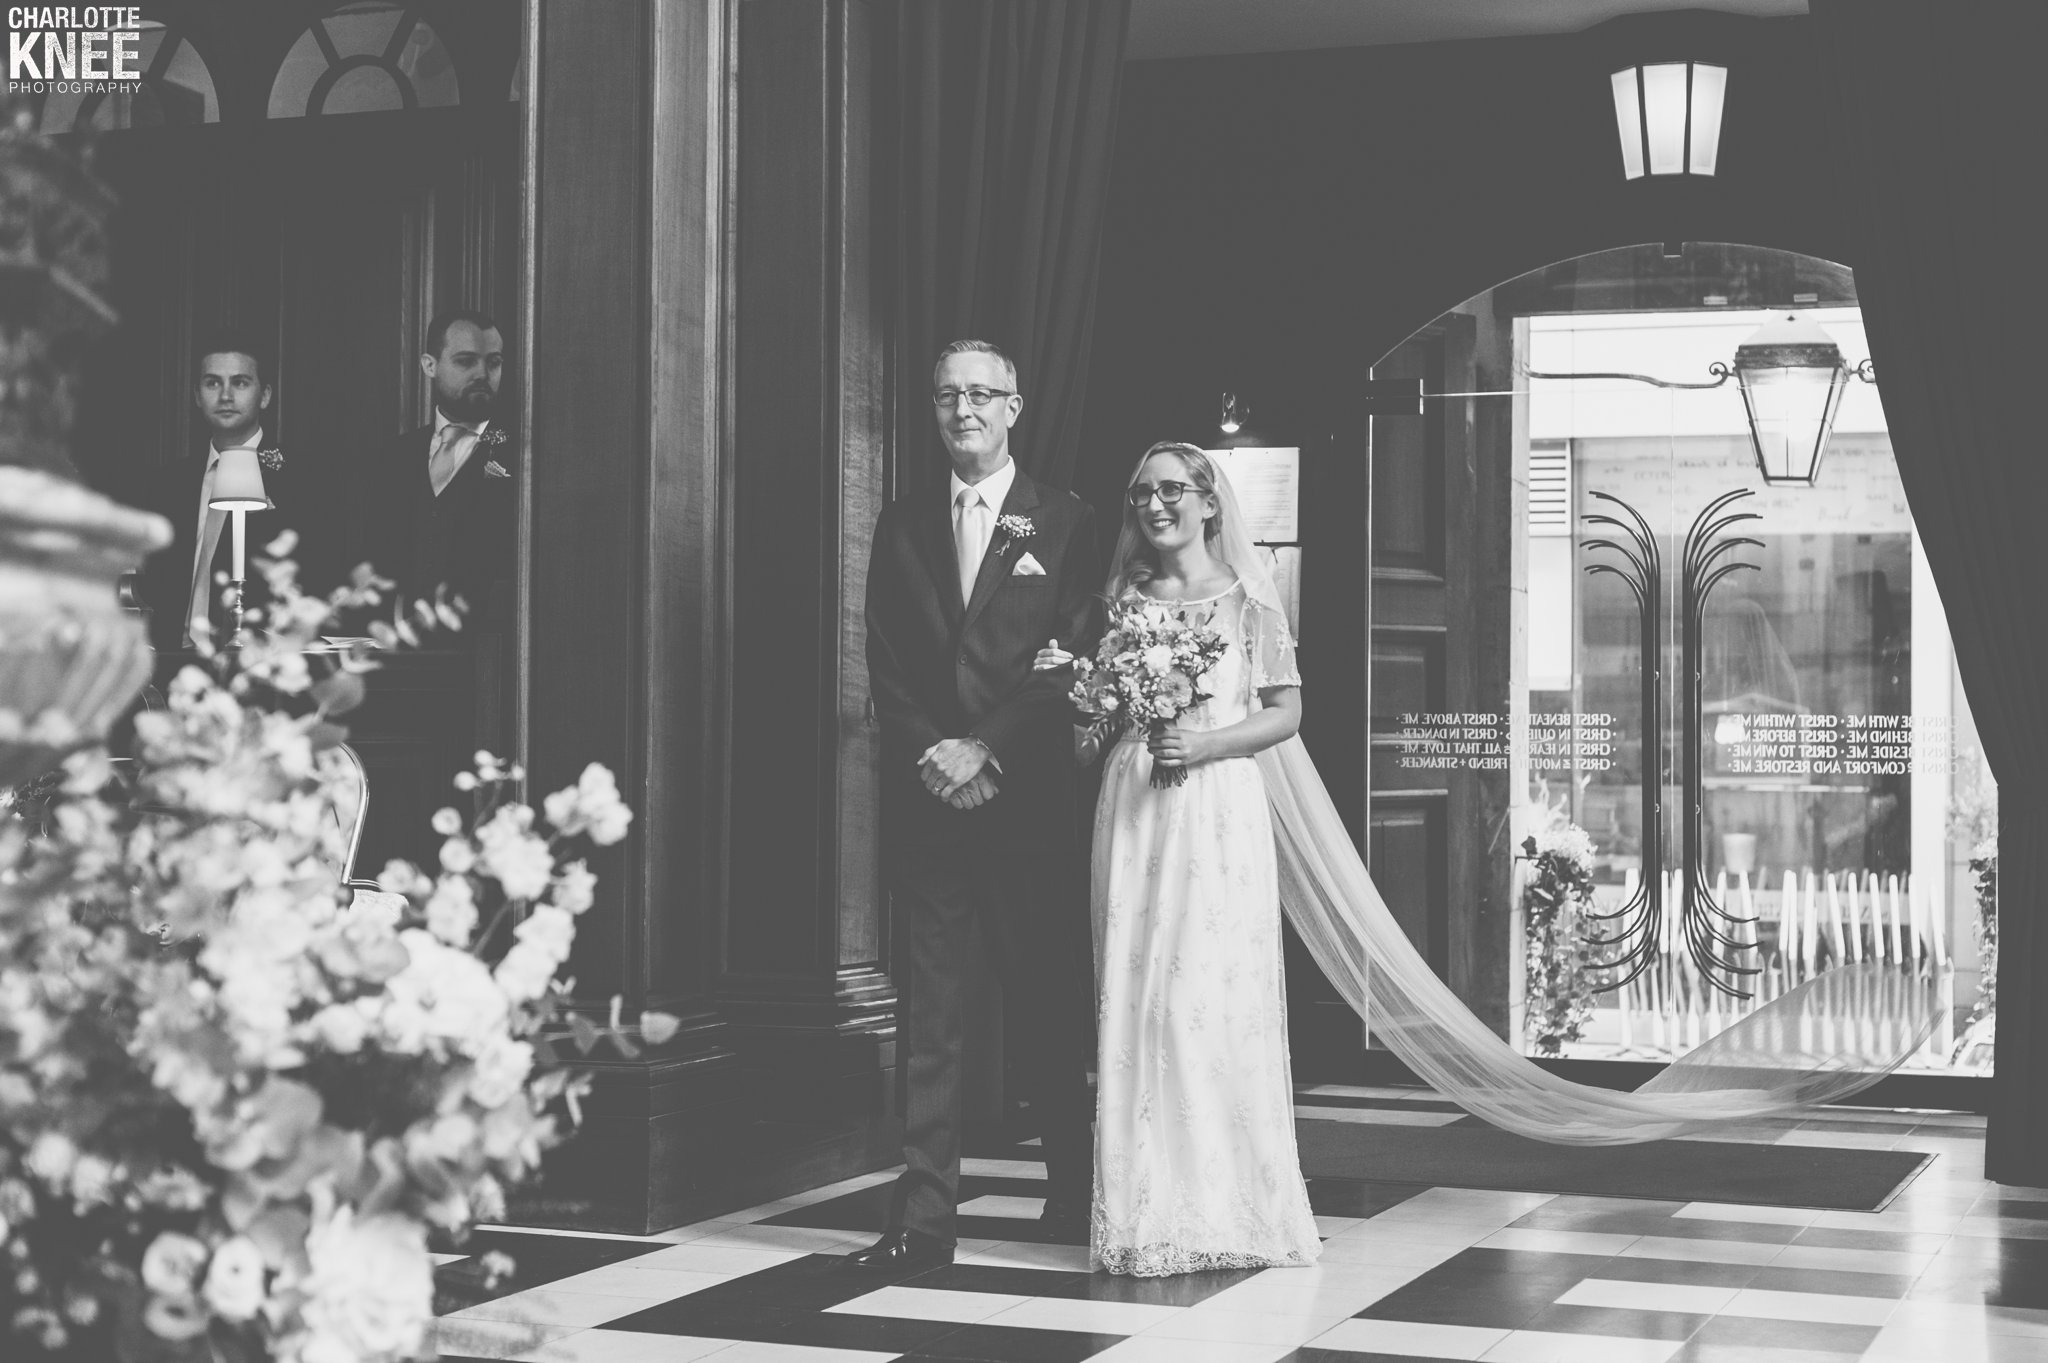 Saddlers Hall London Wedding Photography Copyright Charlotte Knee Photography_0073.jpg